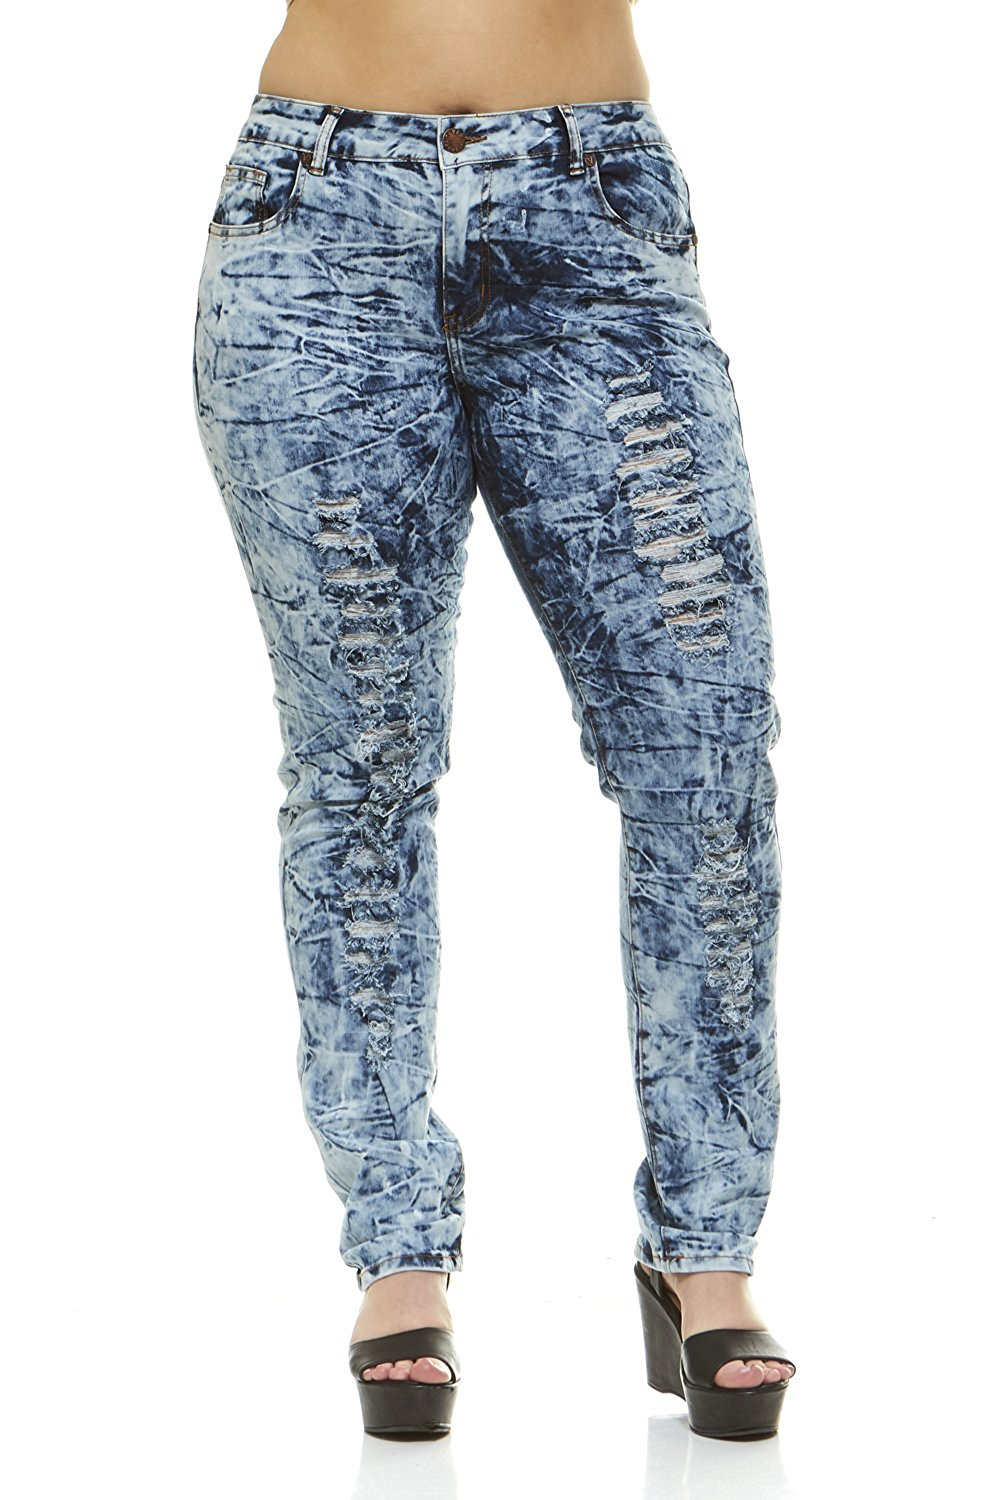 50f0cdb405c Get Quotations · V.I.P.JEANS Ripped Distressed Washed Skinny Stretch Jeans  for Women Junior Or Plus Sizes